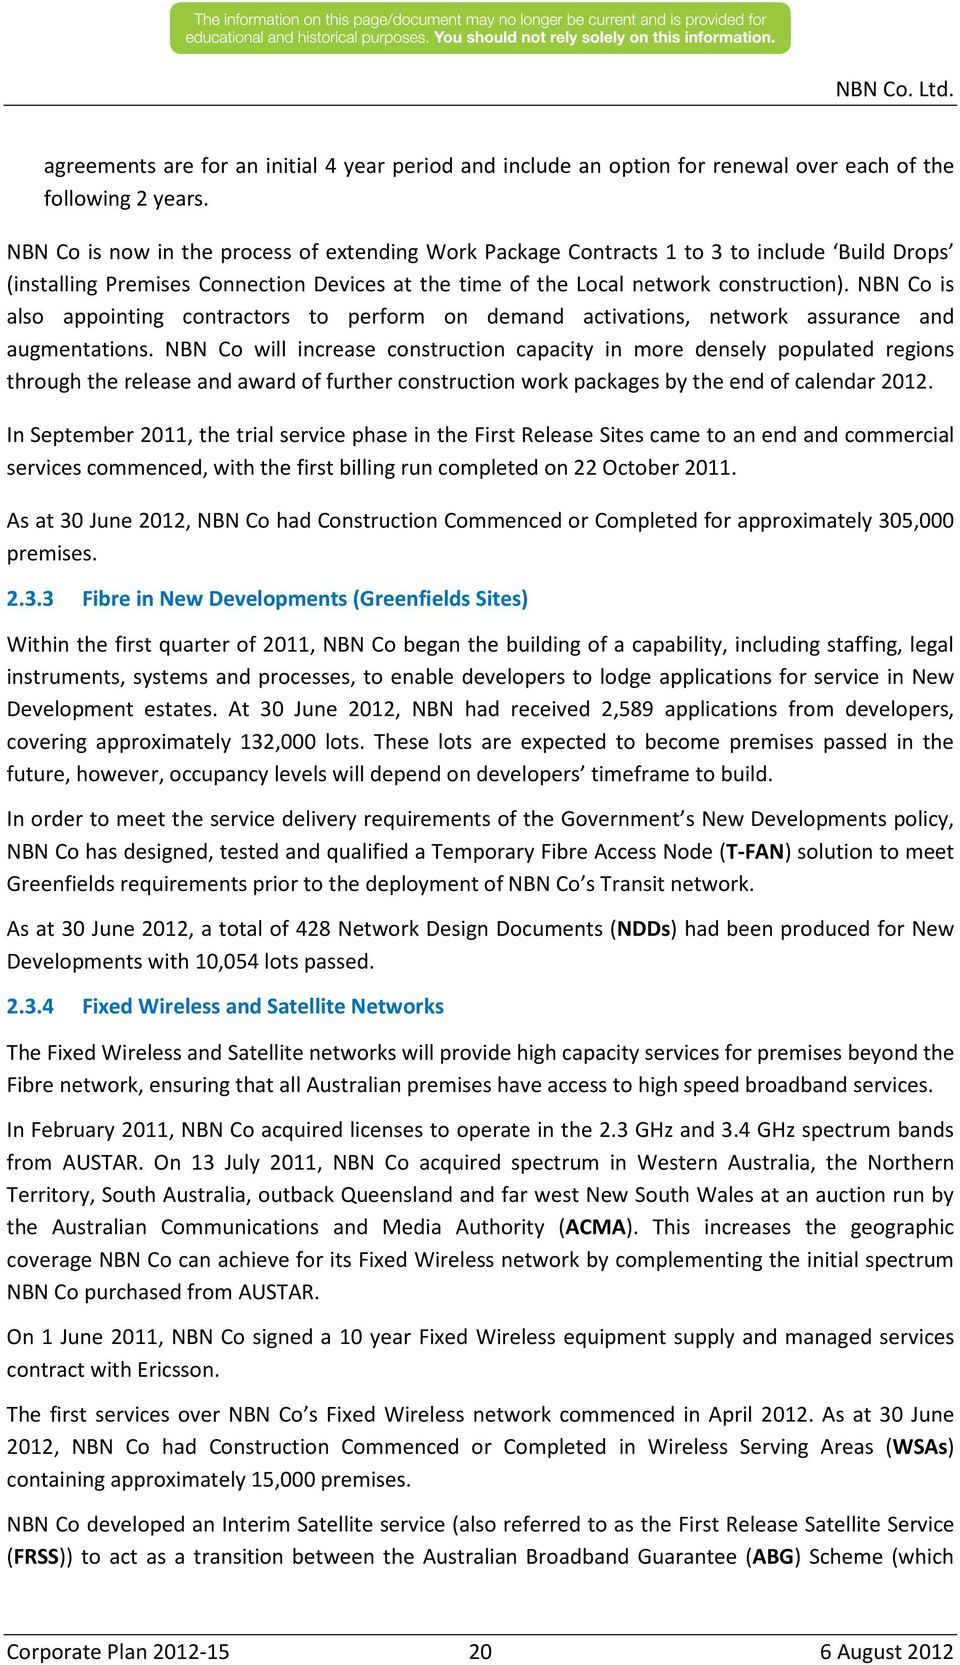 NBN Co is also appointing contractors to perform on demand activations, network assurance and augmentations.